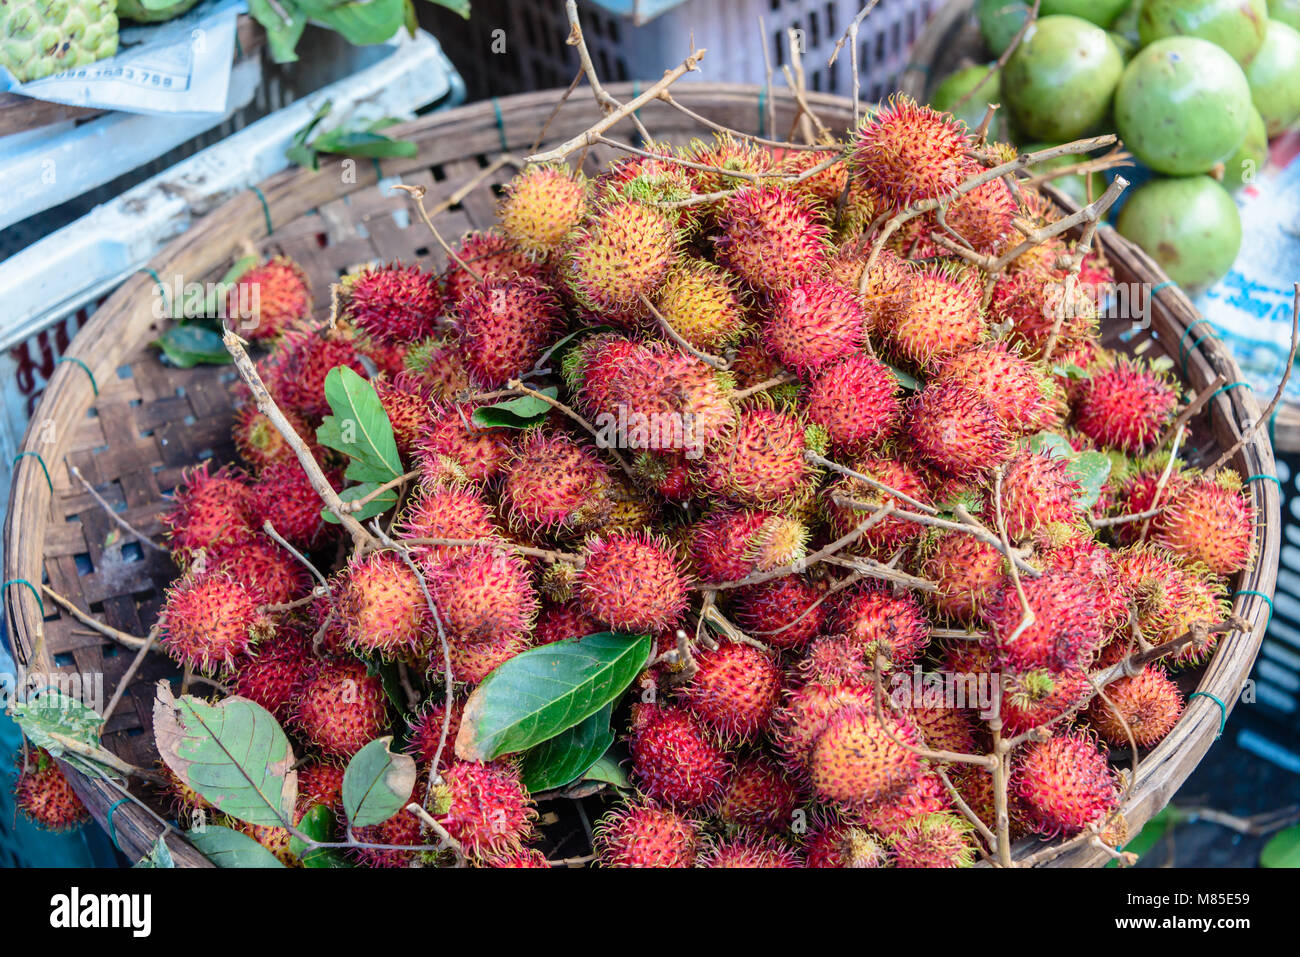 Lychees for sale at an outdoor market, Hoi An, Vietnam - Stock Image